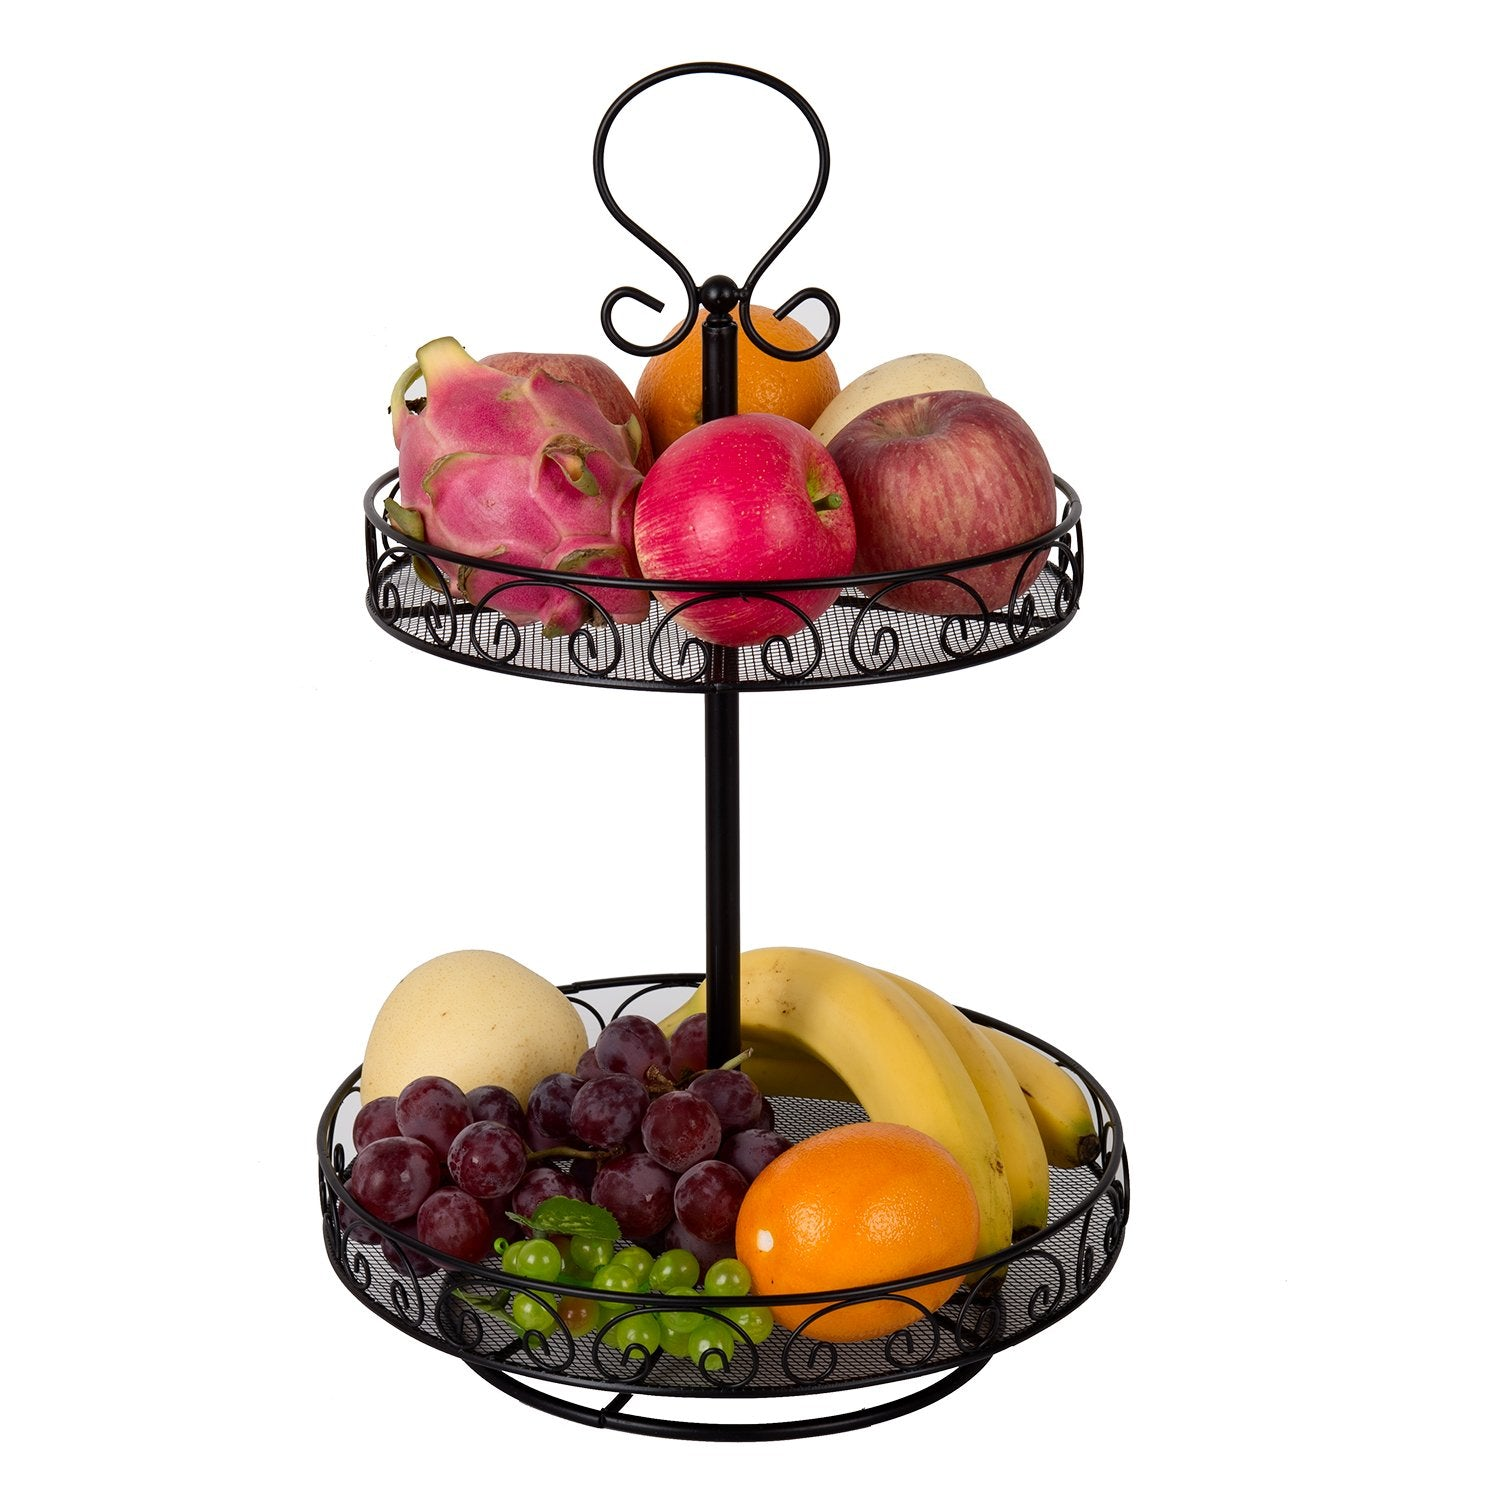 VANRA Spice Rack Kitchen Countertop Spice Stand Fruit Basket Holder Jars Storage Organizer Shelf Rack Metal Wire Fruit Bowl with Handle